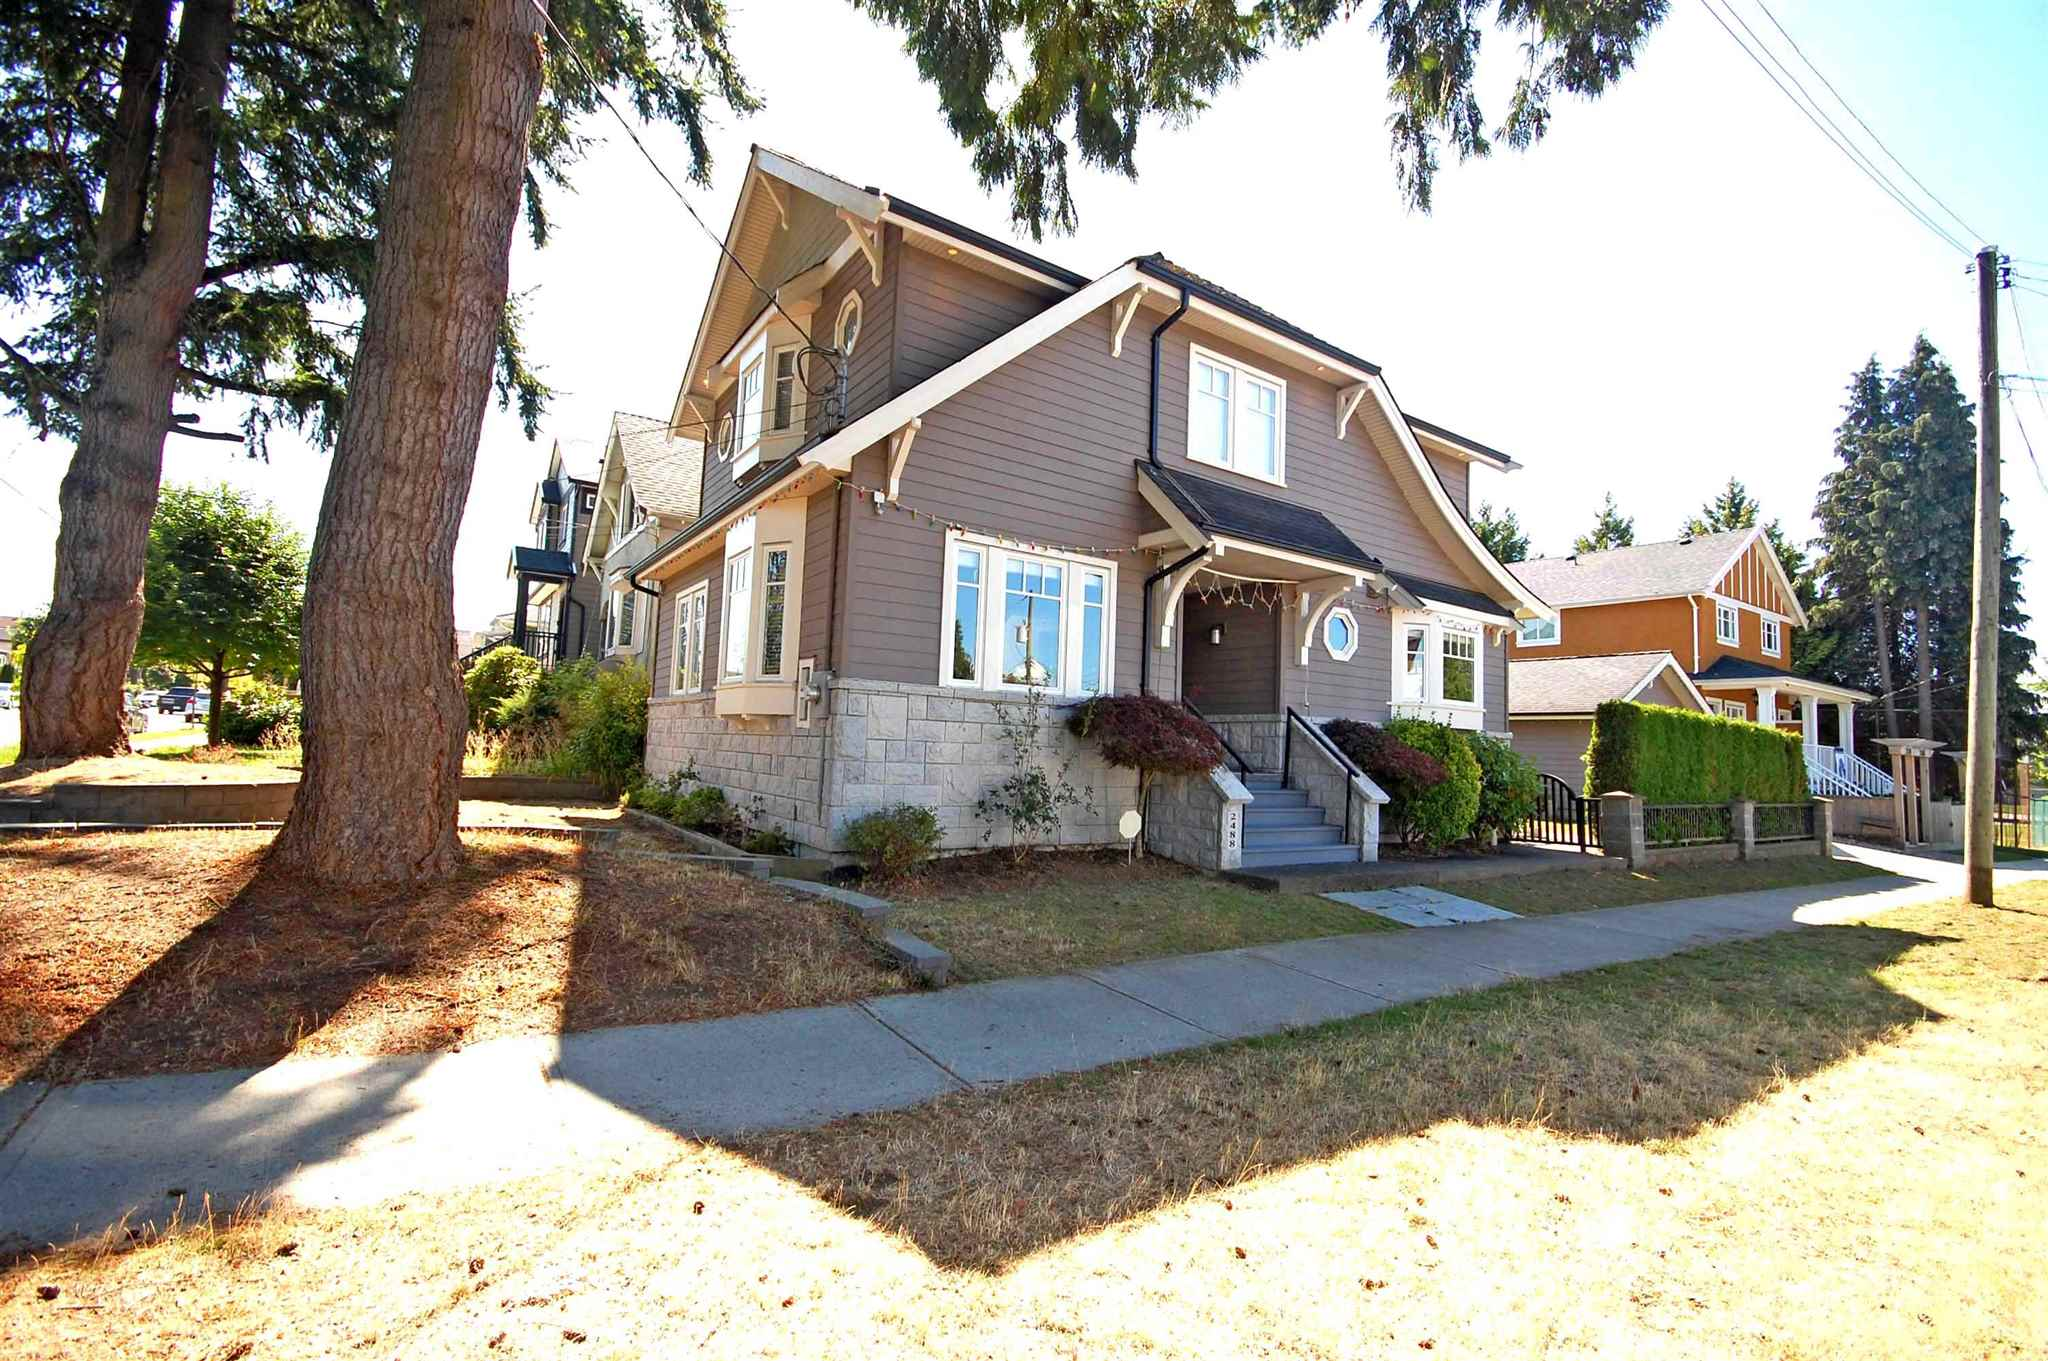 2488 E 37TH AVENUE - Collingwood VE House/Single Family for sale, 7 Bedrooms (R2601929) - #1